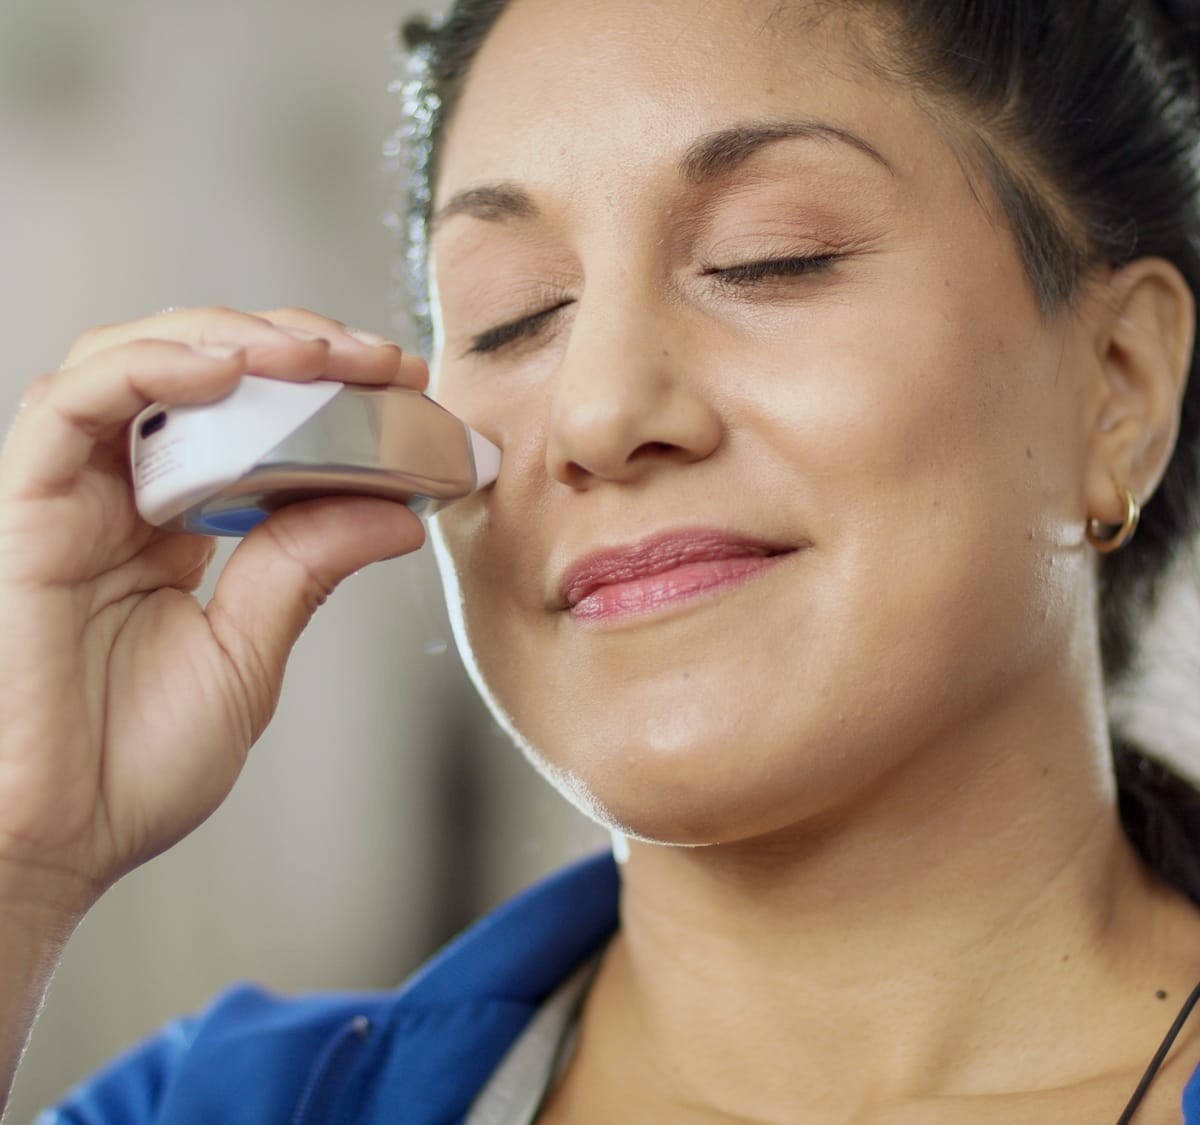 ClearUP erases allergy sinus pain with tech that works